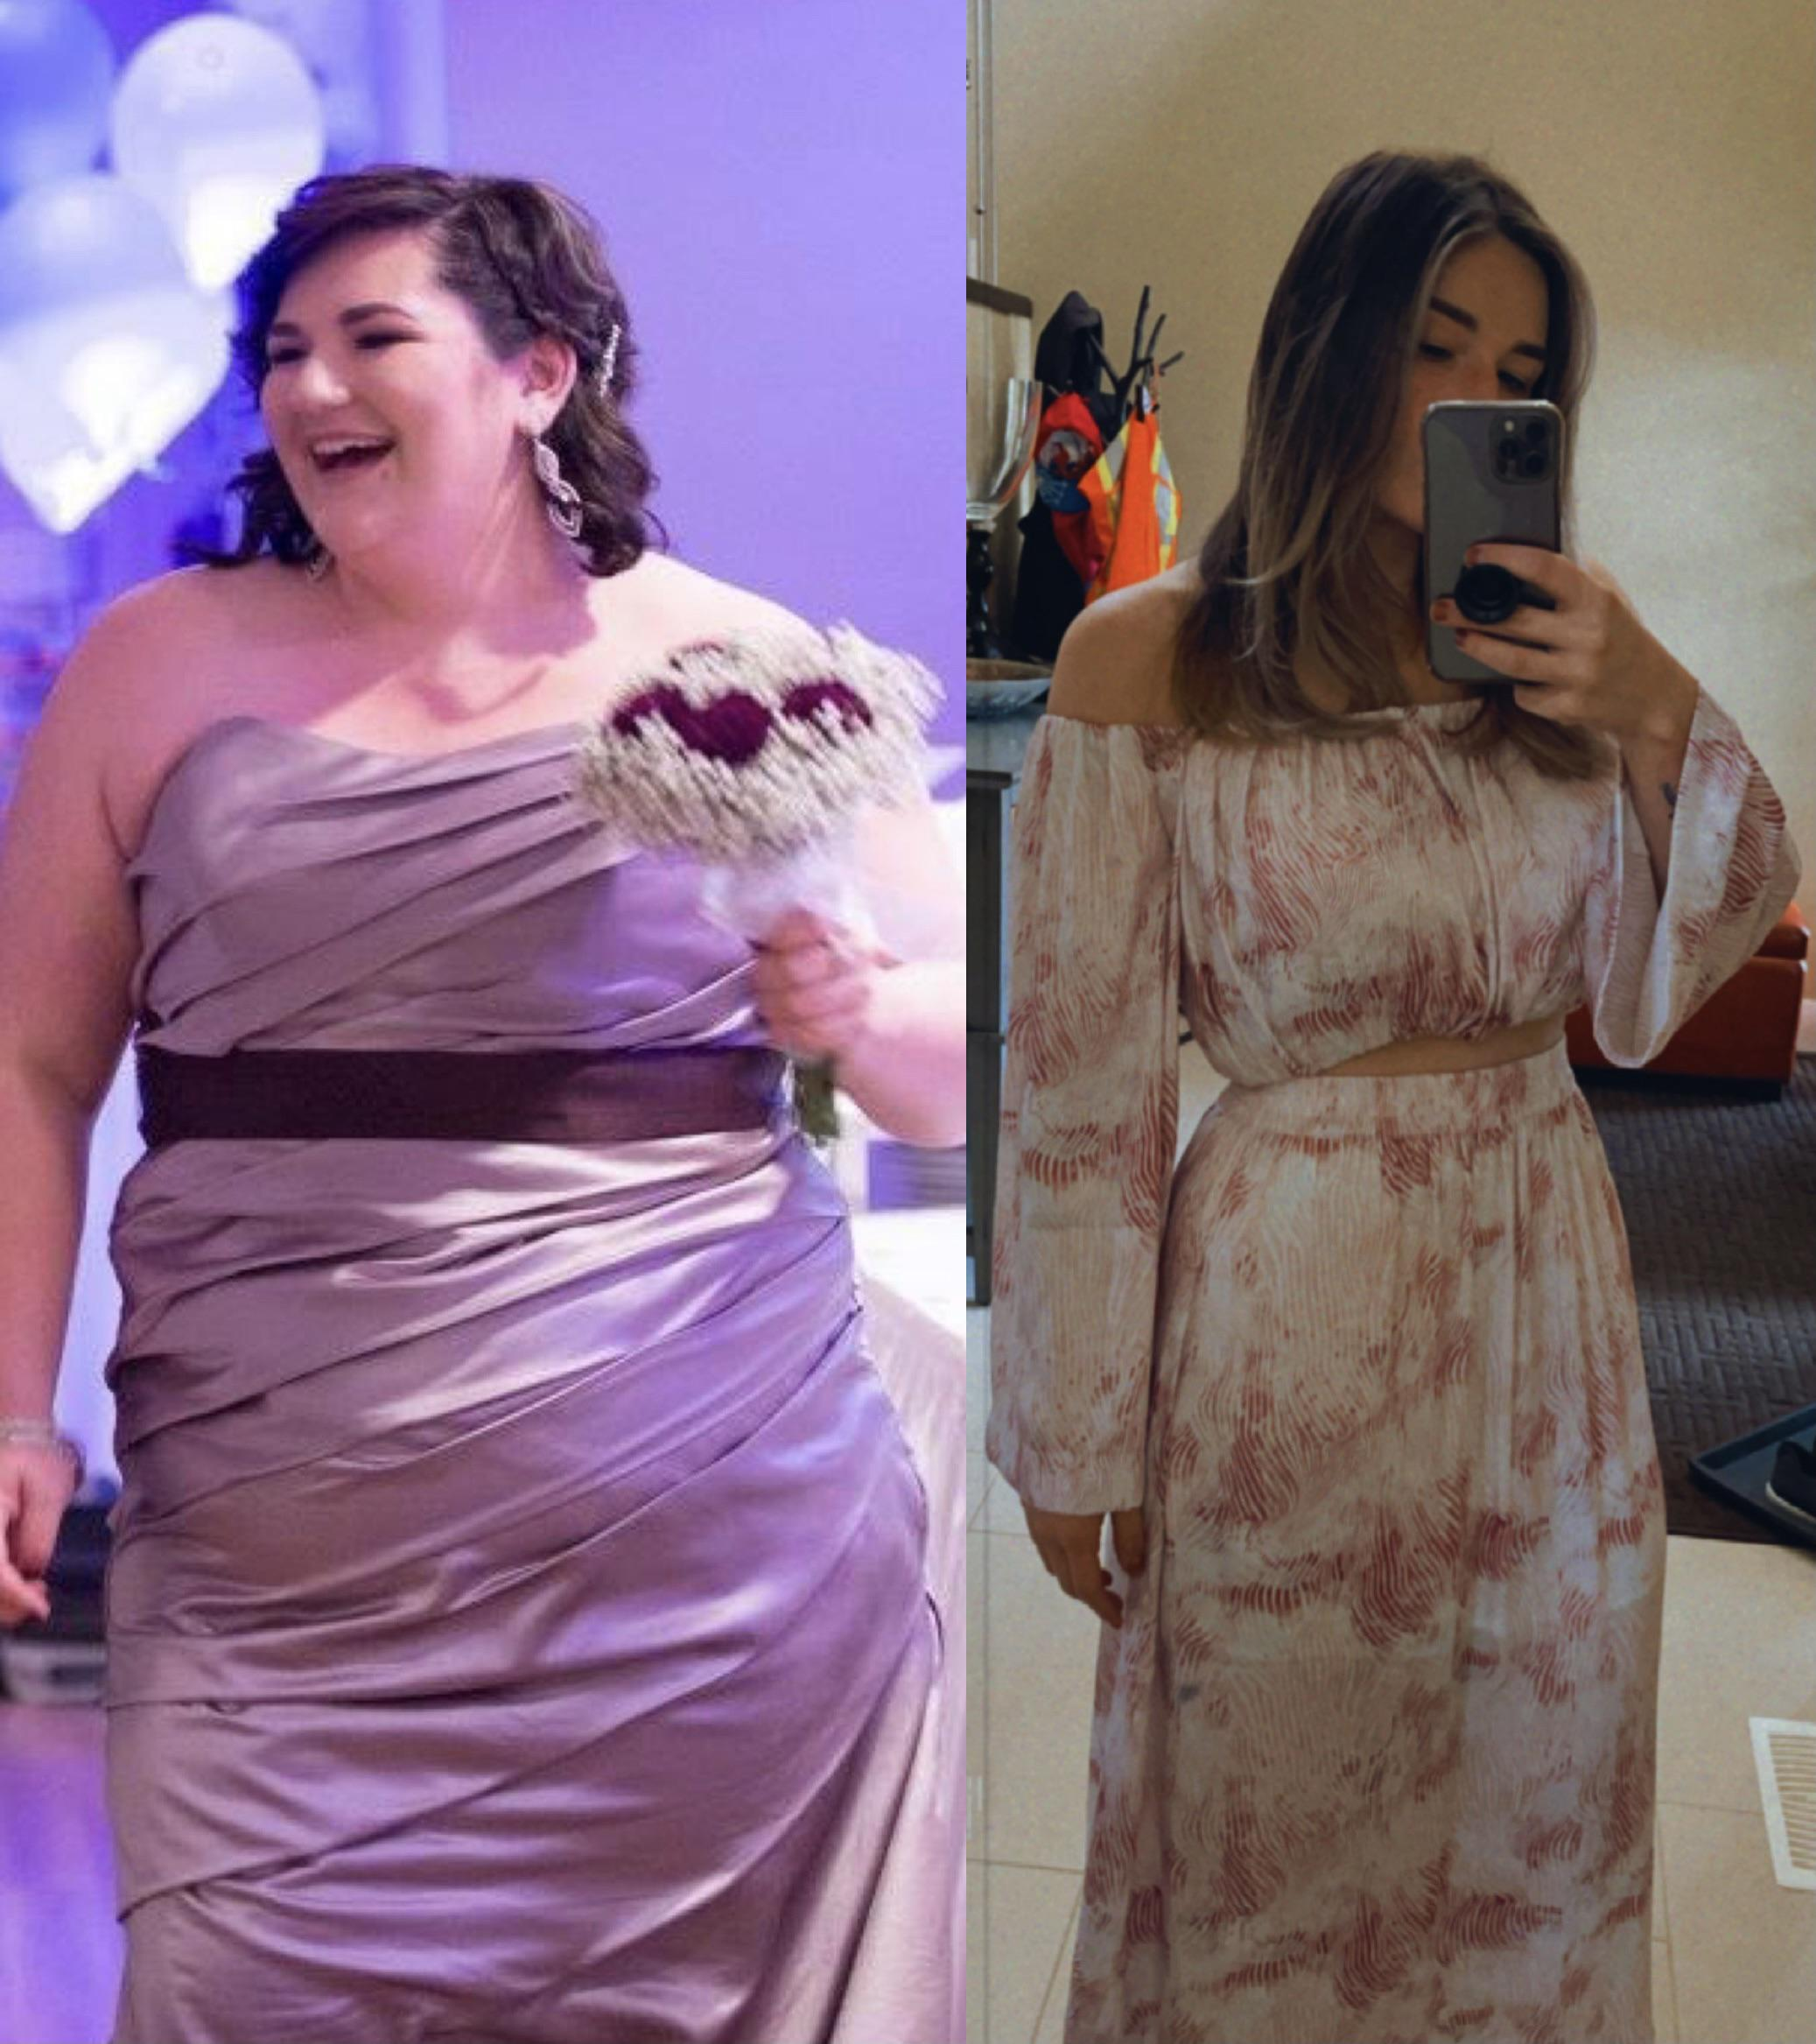 5 foot 6 Female 101 lbs Weight Loss 286 lbs to 185 lbs